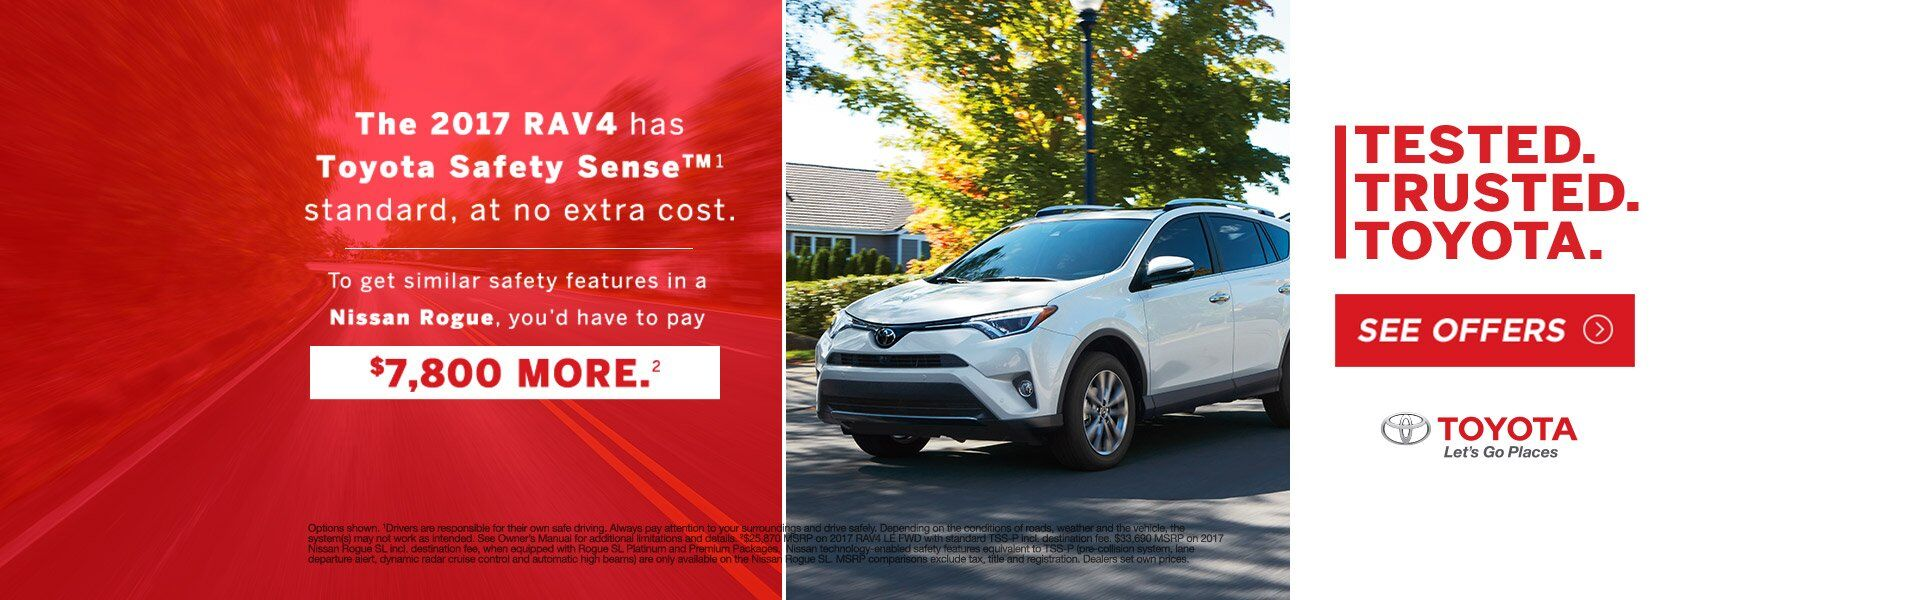 NYR - Tested Trusted 2017 Toyota RAV4